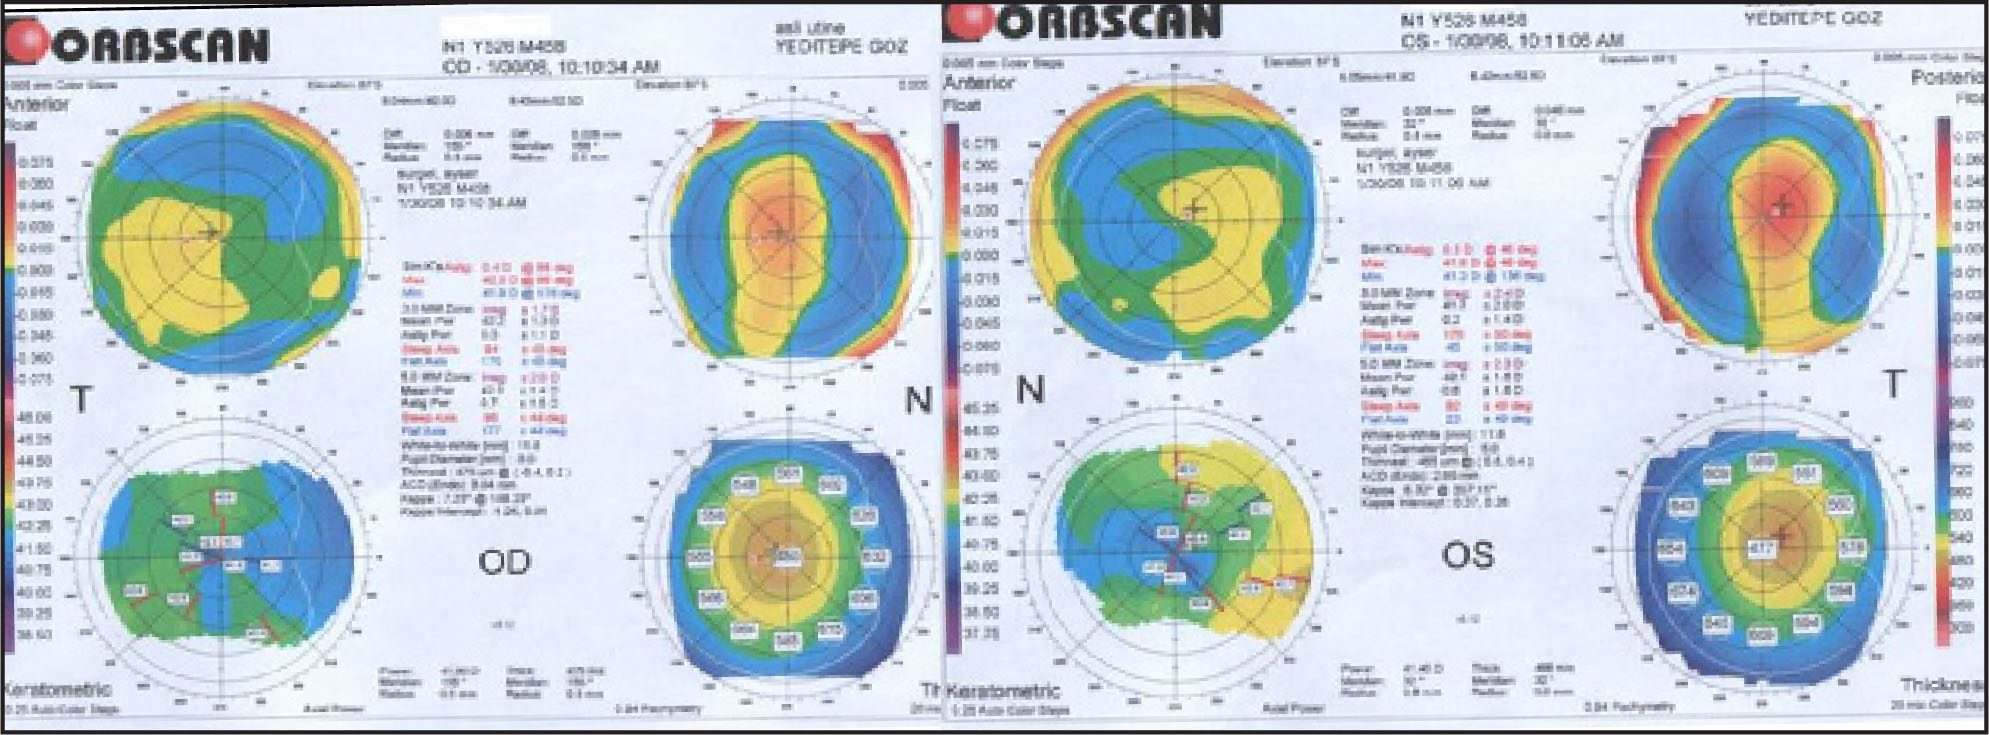 Orbscan Corneal Topography Images of the Right and Left Eyes, Respectively.